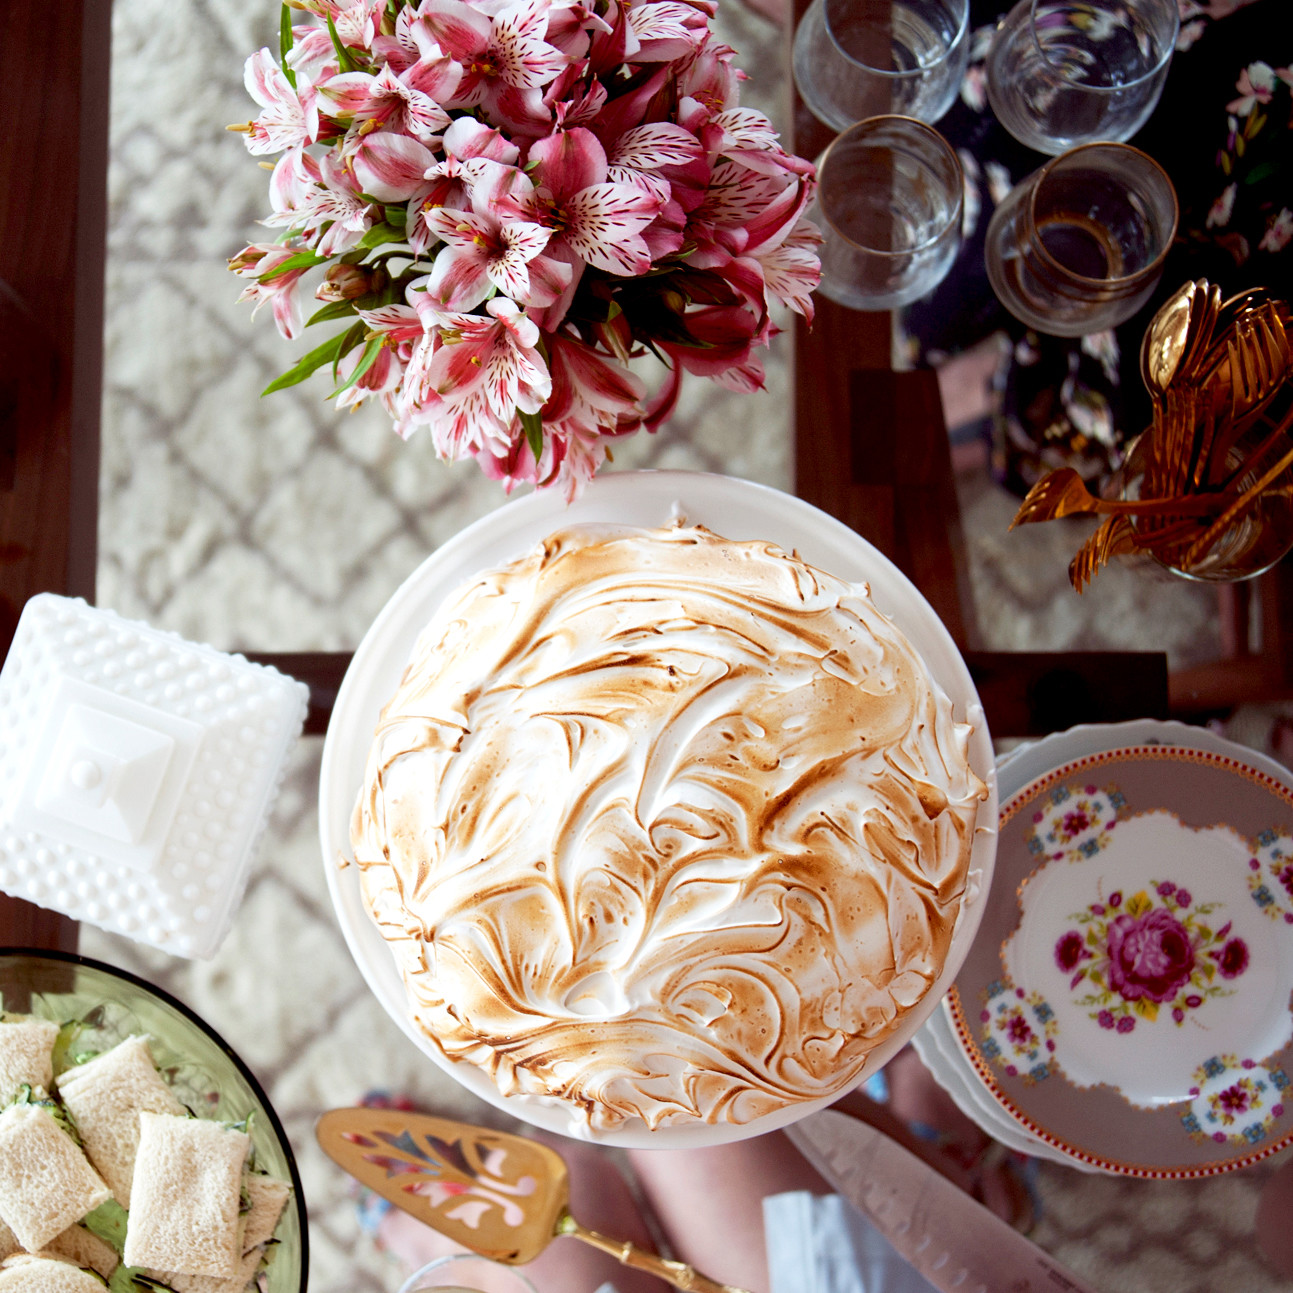 plan a vintage inspired bridal shower that is everything but old fashioned